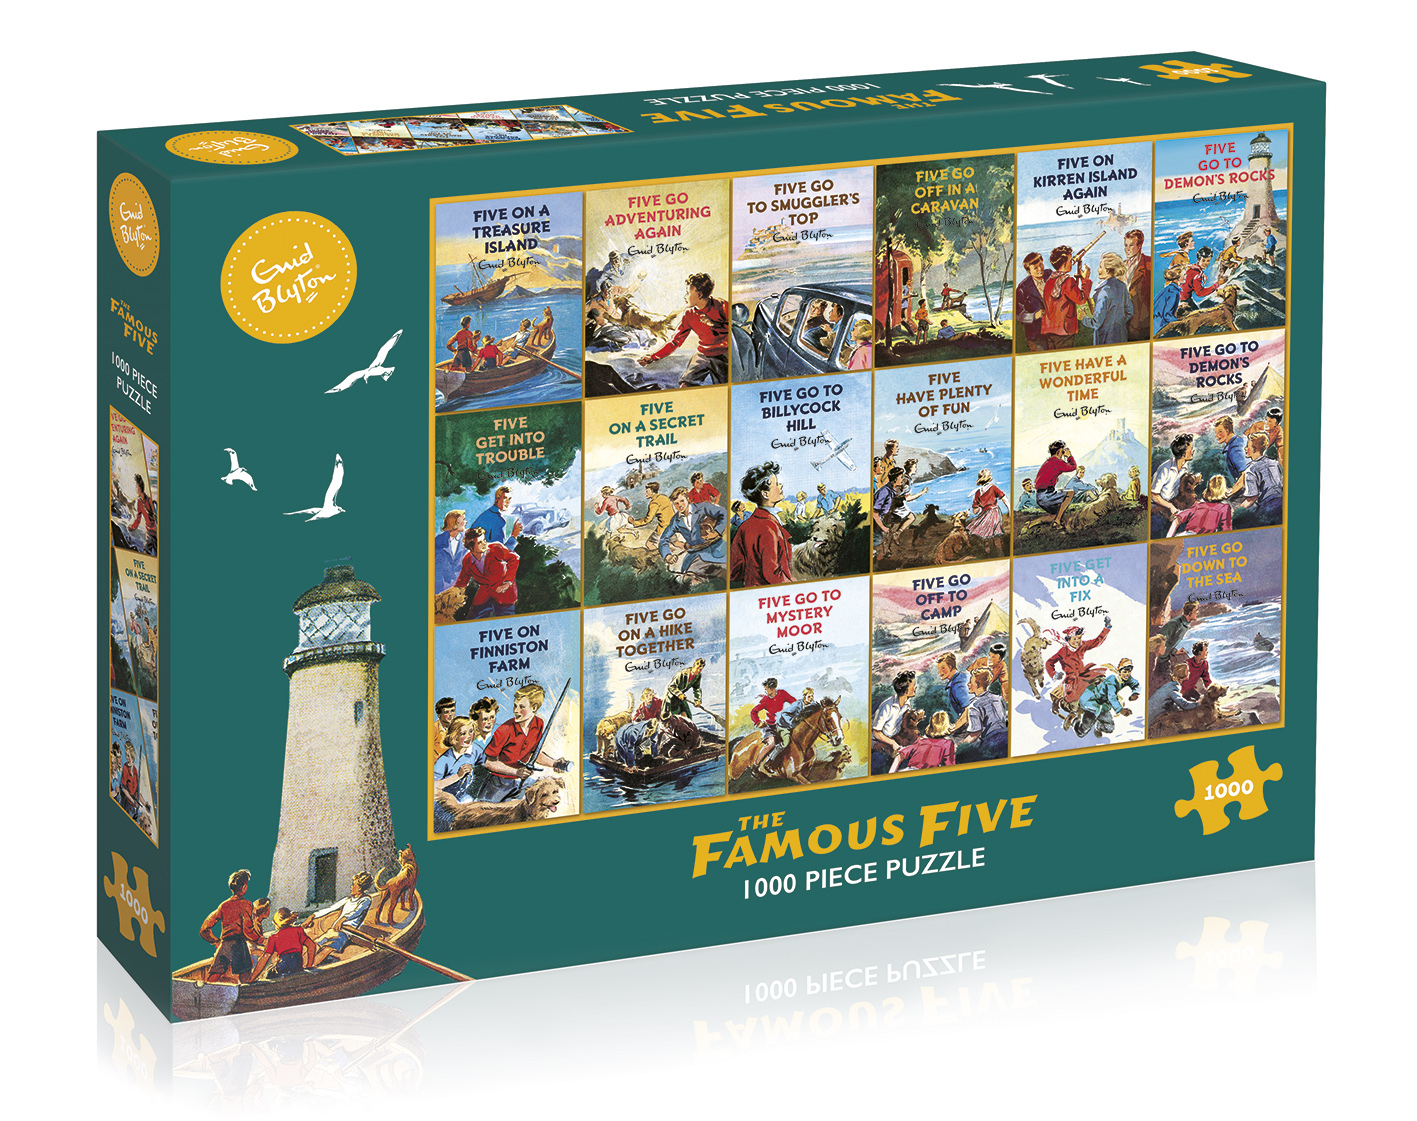 The Famous Five 1000 piece puzzle